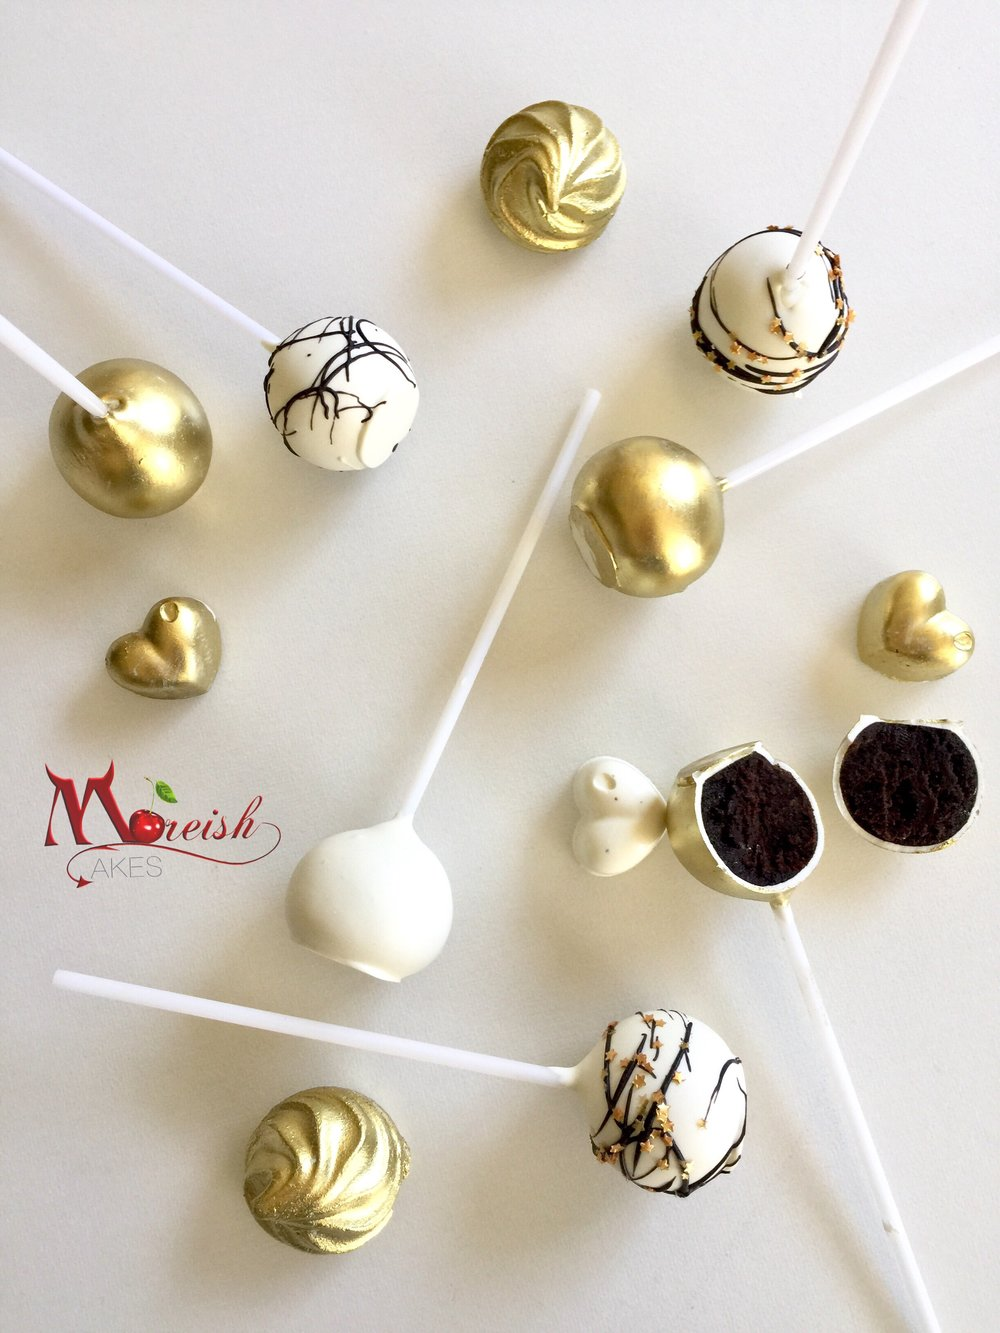 Cake Pop Class - Thursday May 3rd9.30am to 4.30pm